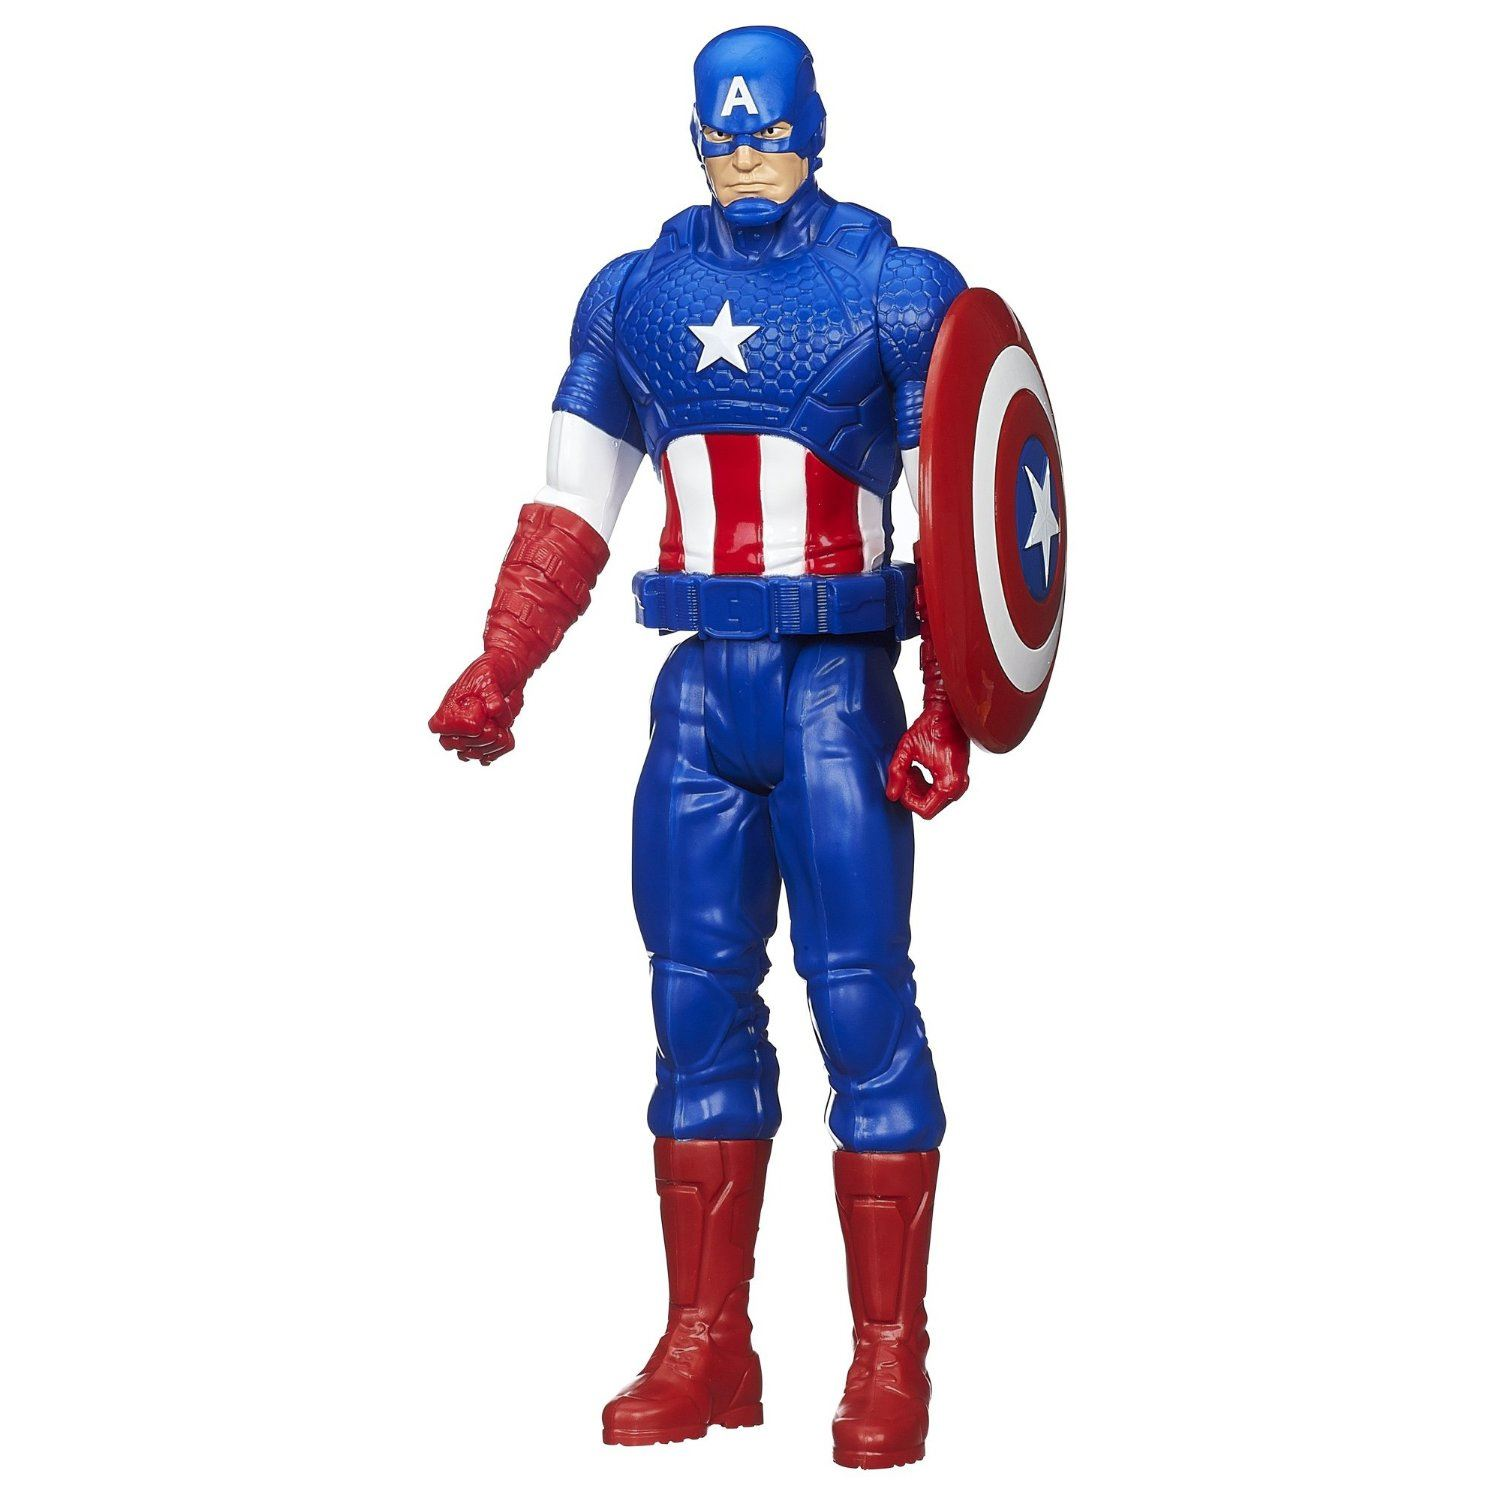 Super Hero Toys For Boys : Hasbro marvel avengers quot titan hero superhero toy action